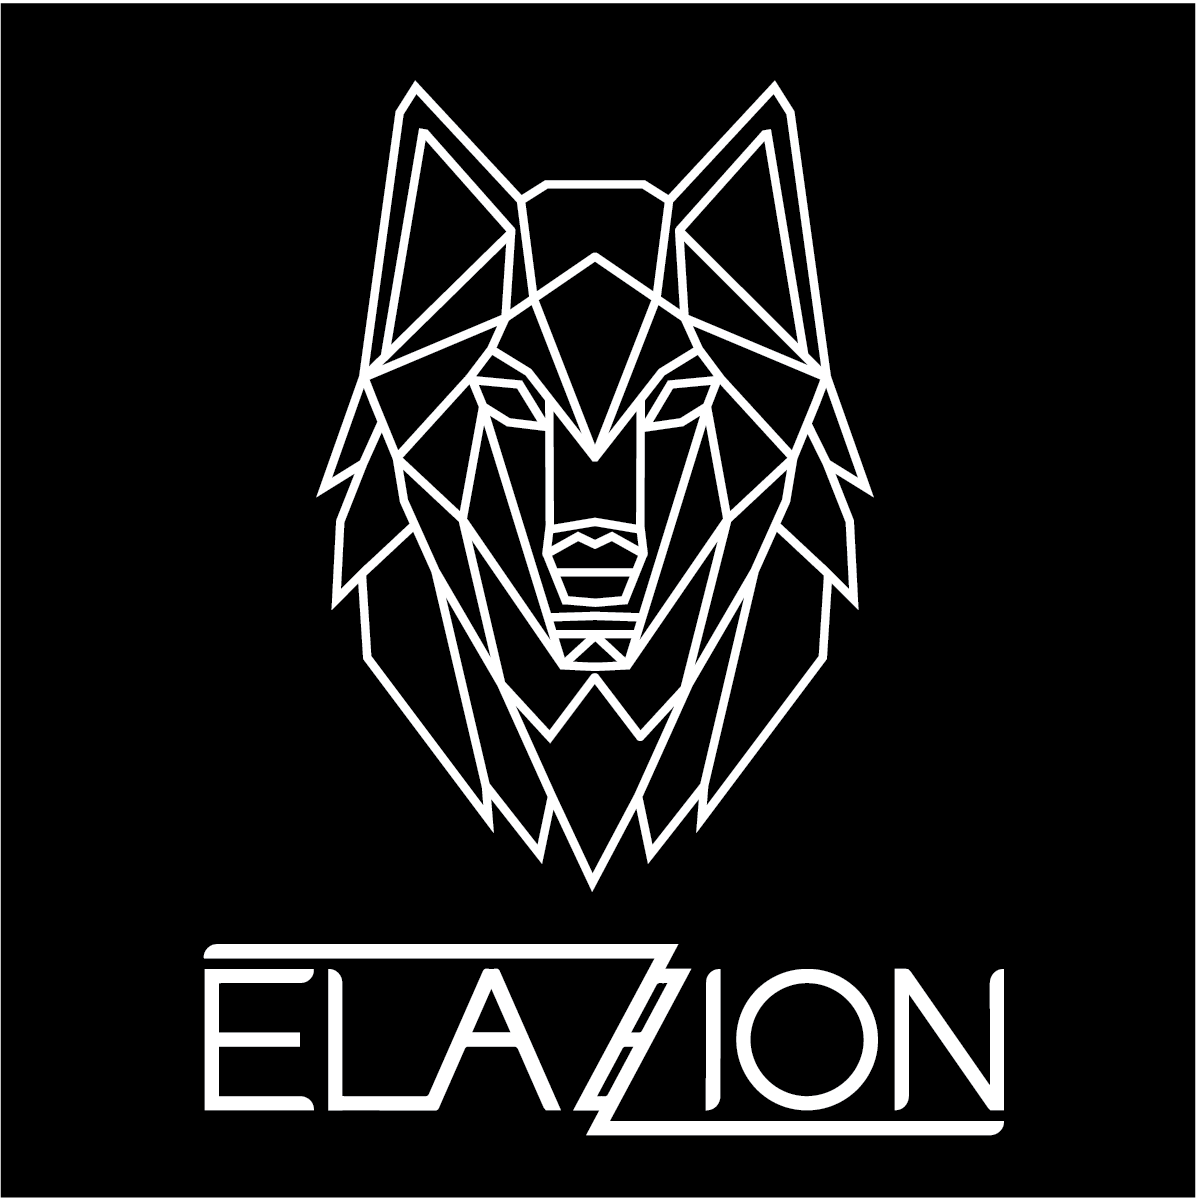 Elazion-logo-print-06with-name-black-bg.png